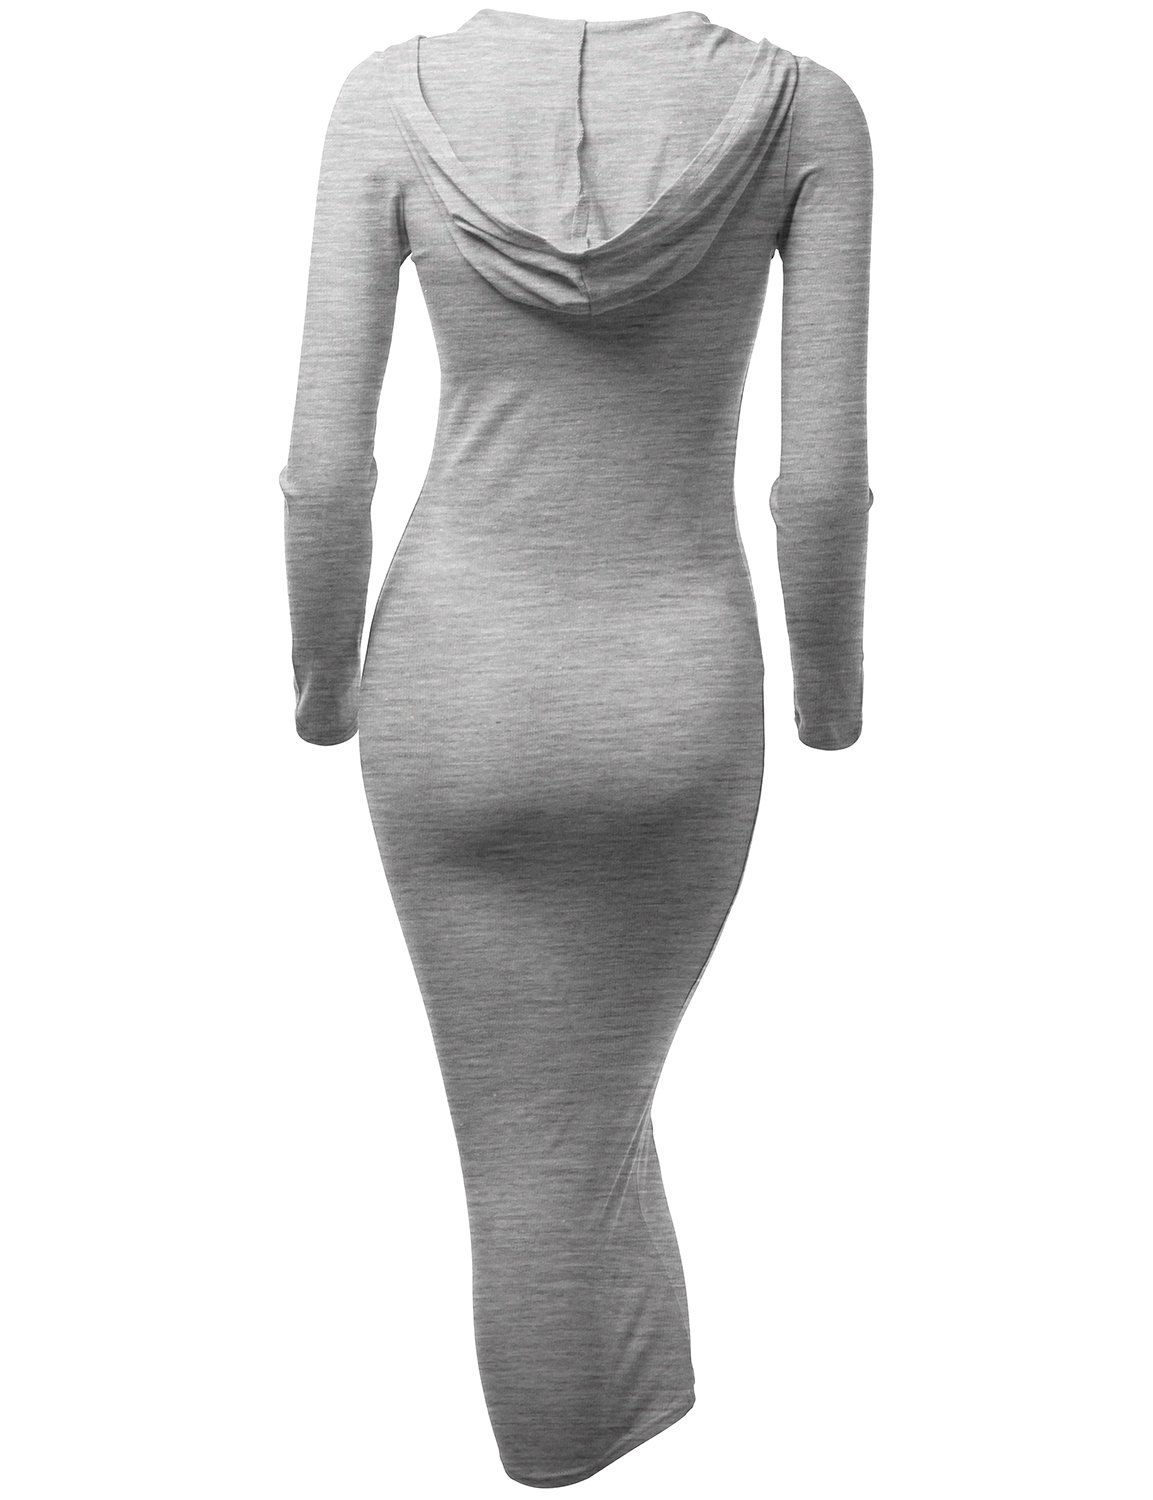 Doublju Fitted Dress With Sexy Side Zipper Point For Women With Plus Size GRAY MEDIUM by Doublju (Image #3)